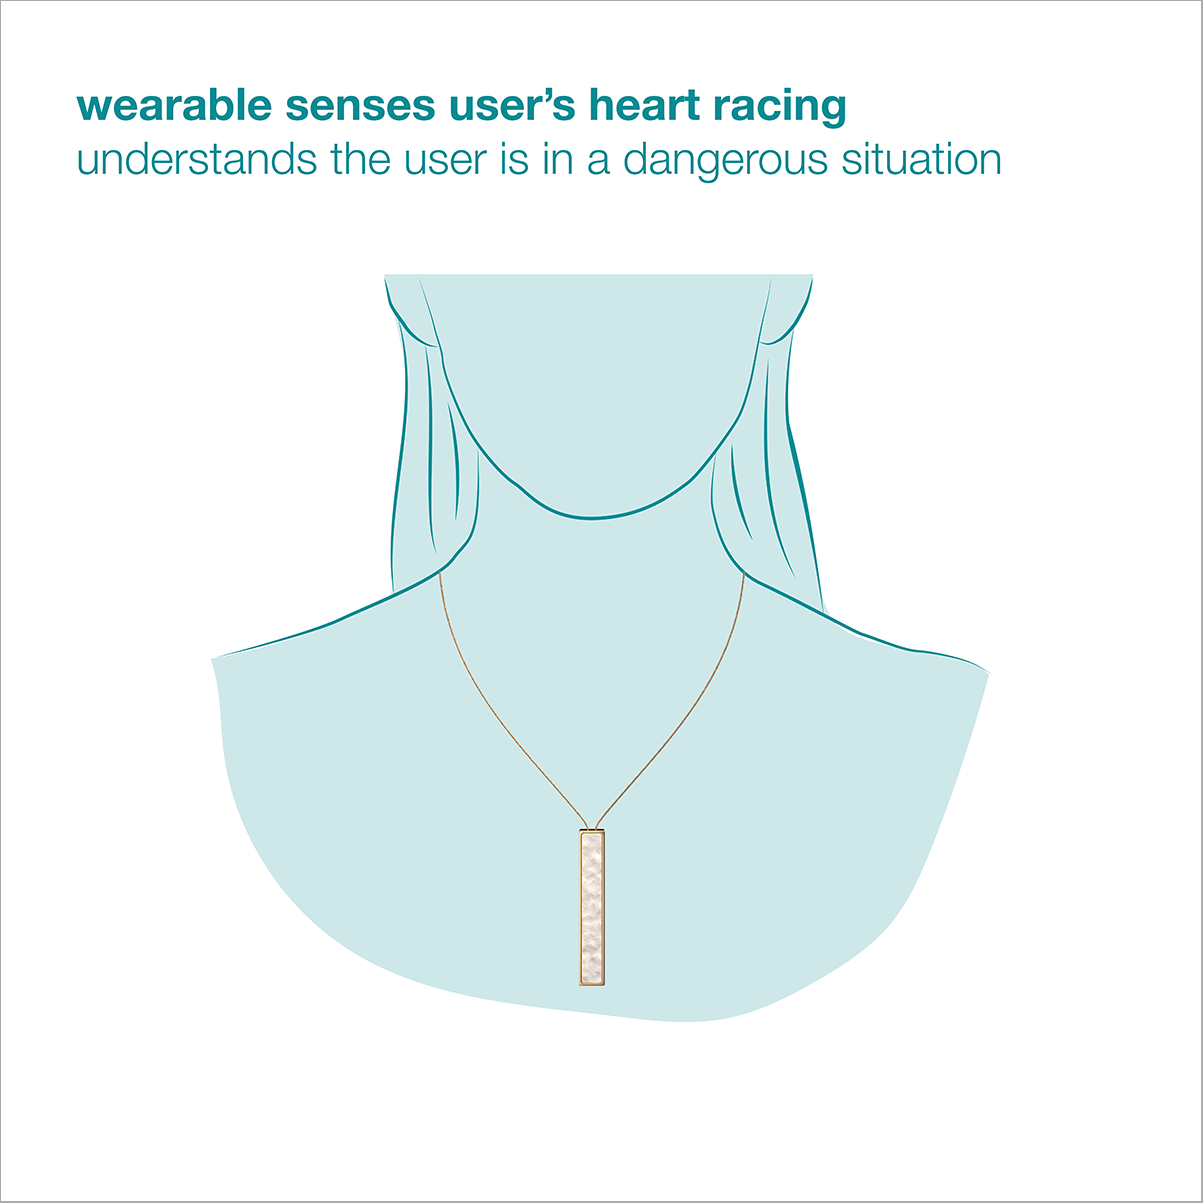 A design of a wearable necklace that alerts of potential danger.